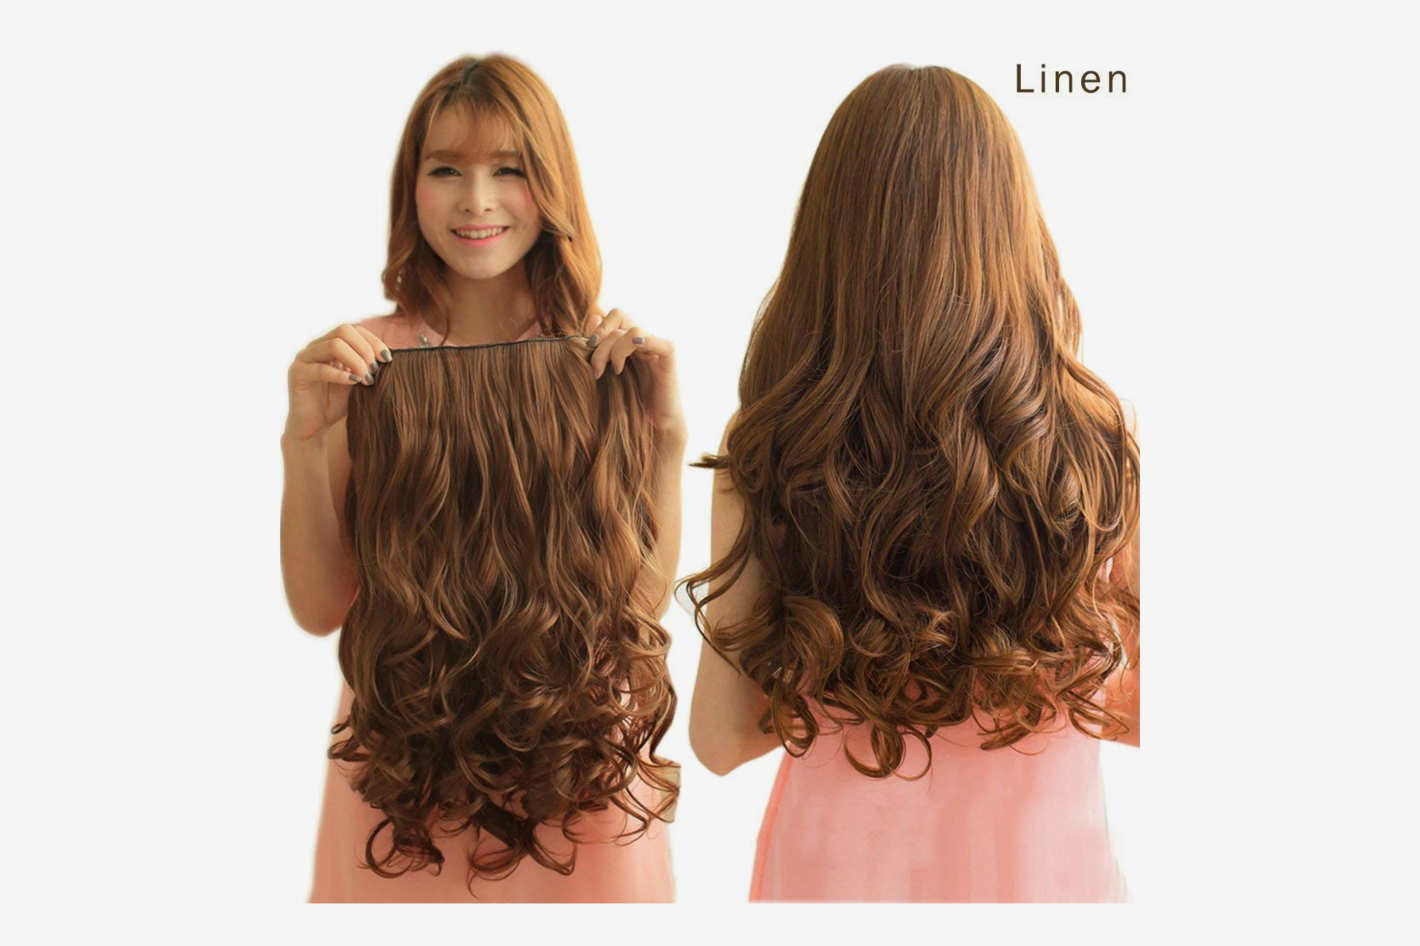 clip art stock  best in extensions. Clip hair